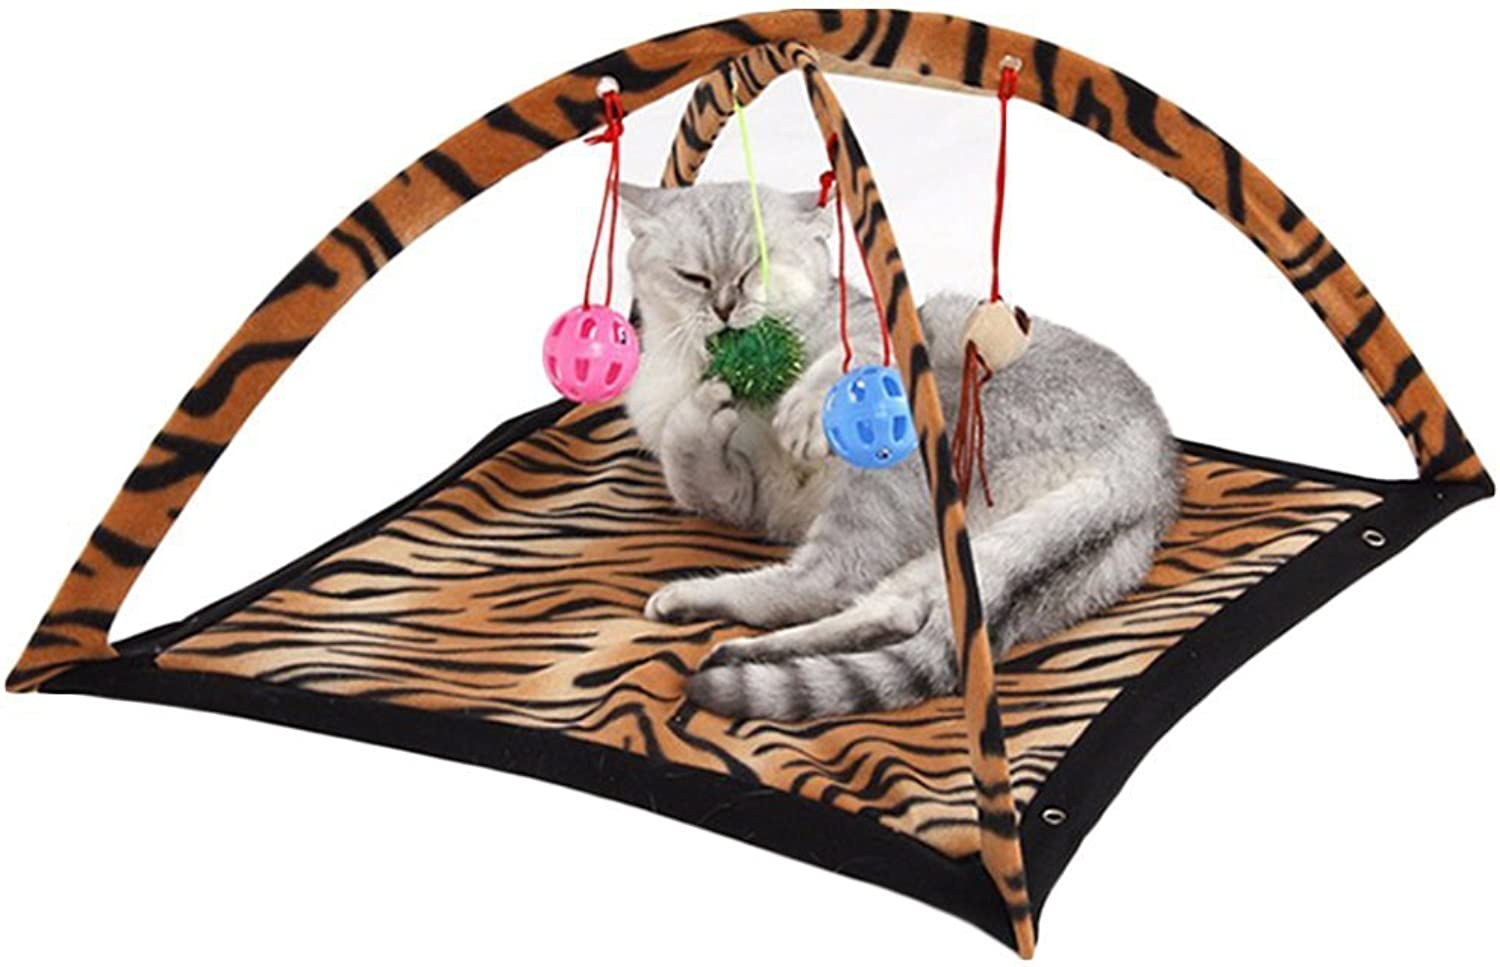 Cat Bed Playful Bed Exercise Game Tent Cat Litter Puzzle Parenting Funny Cat Toy